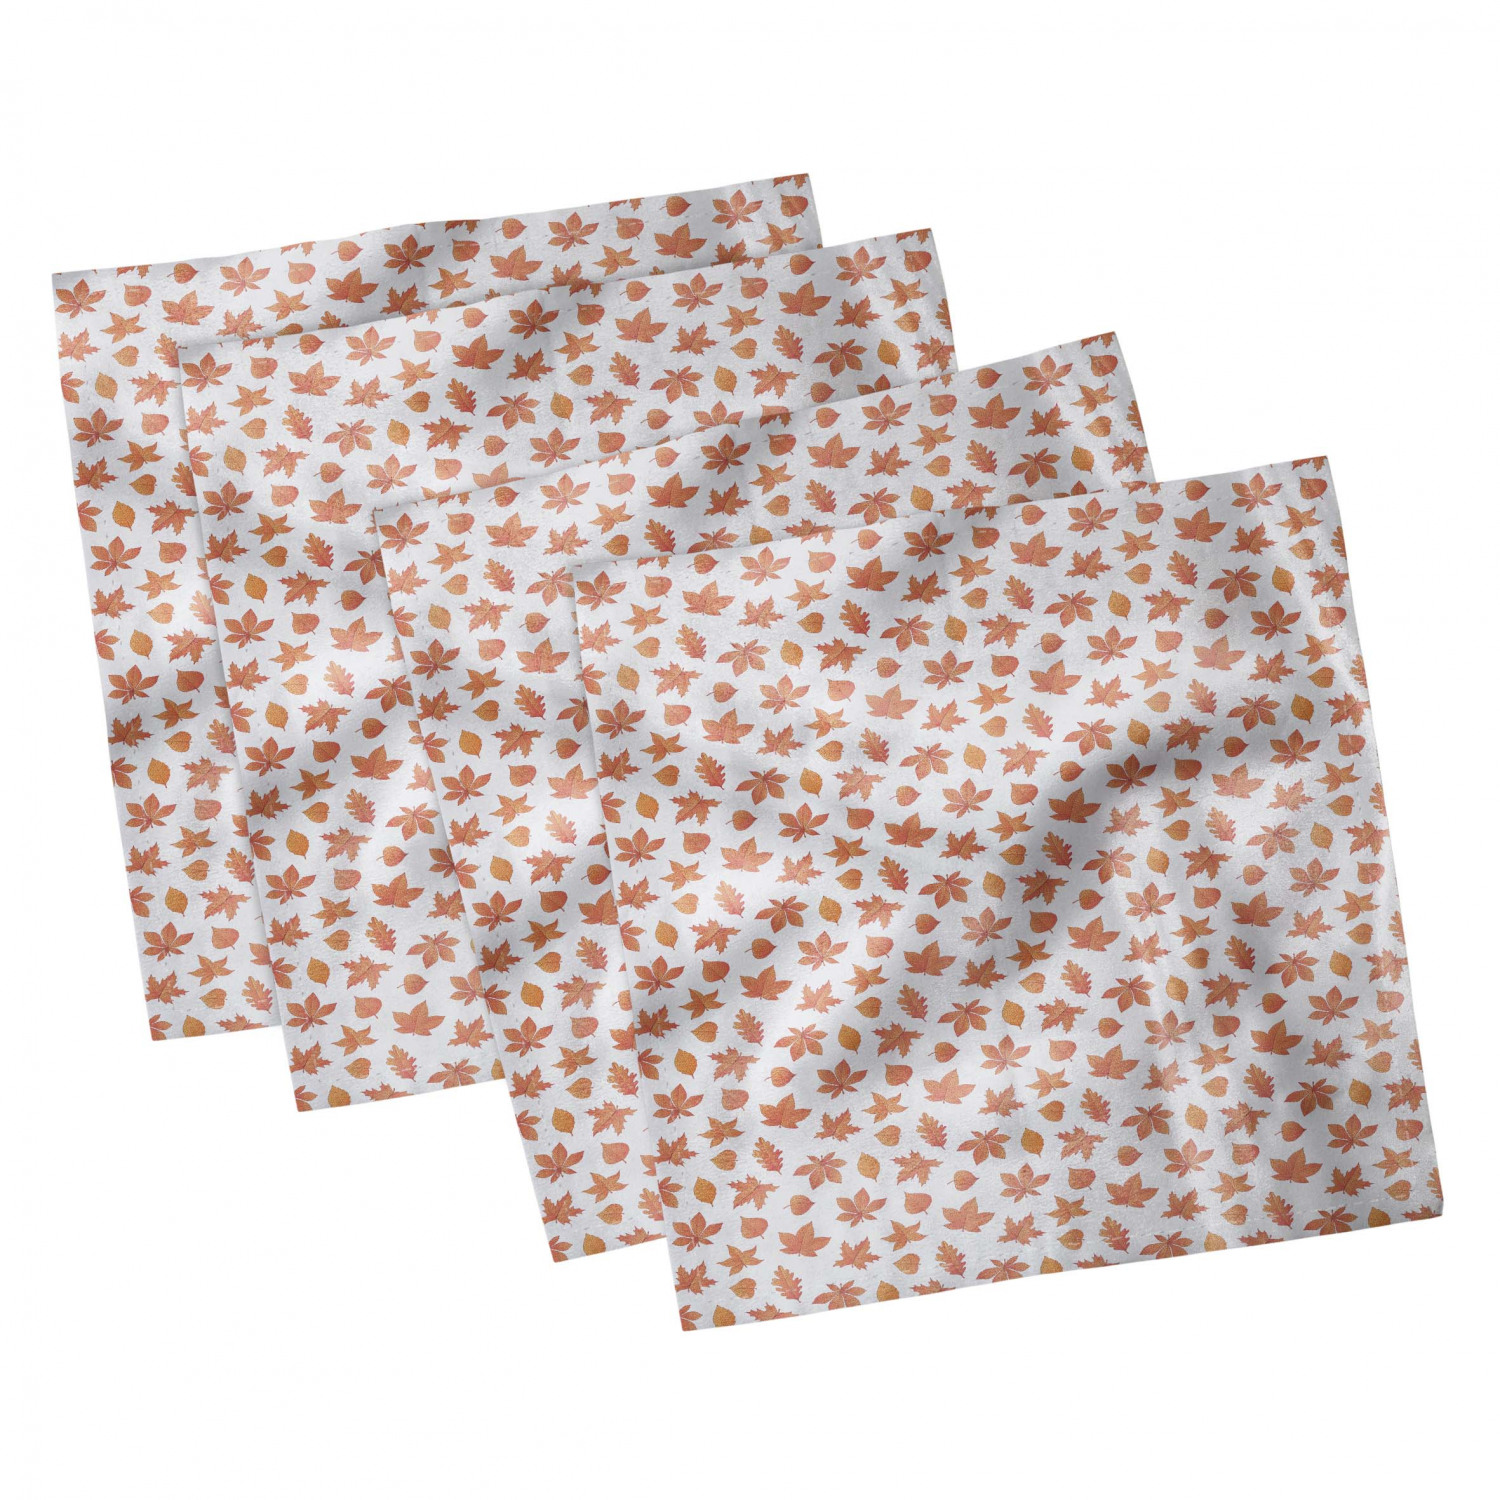 thumbnail 117 - Ambesonne-Leaves-Forest-Decorative-Satin-Napkins-Set-of-4-Party-Dinner-Fabric